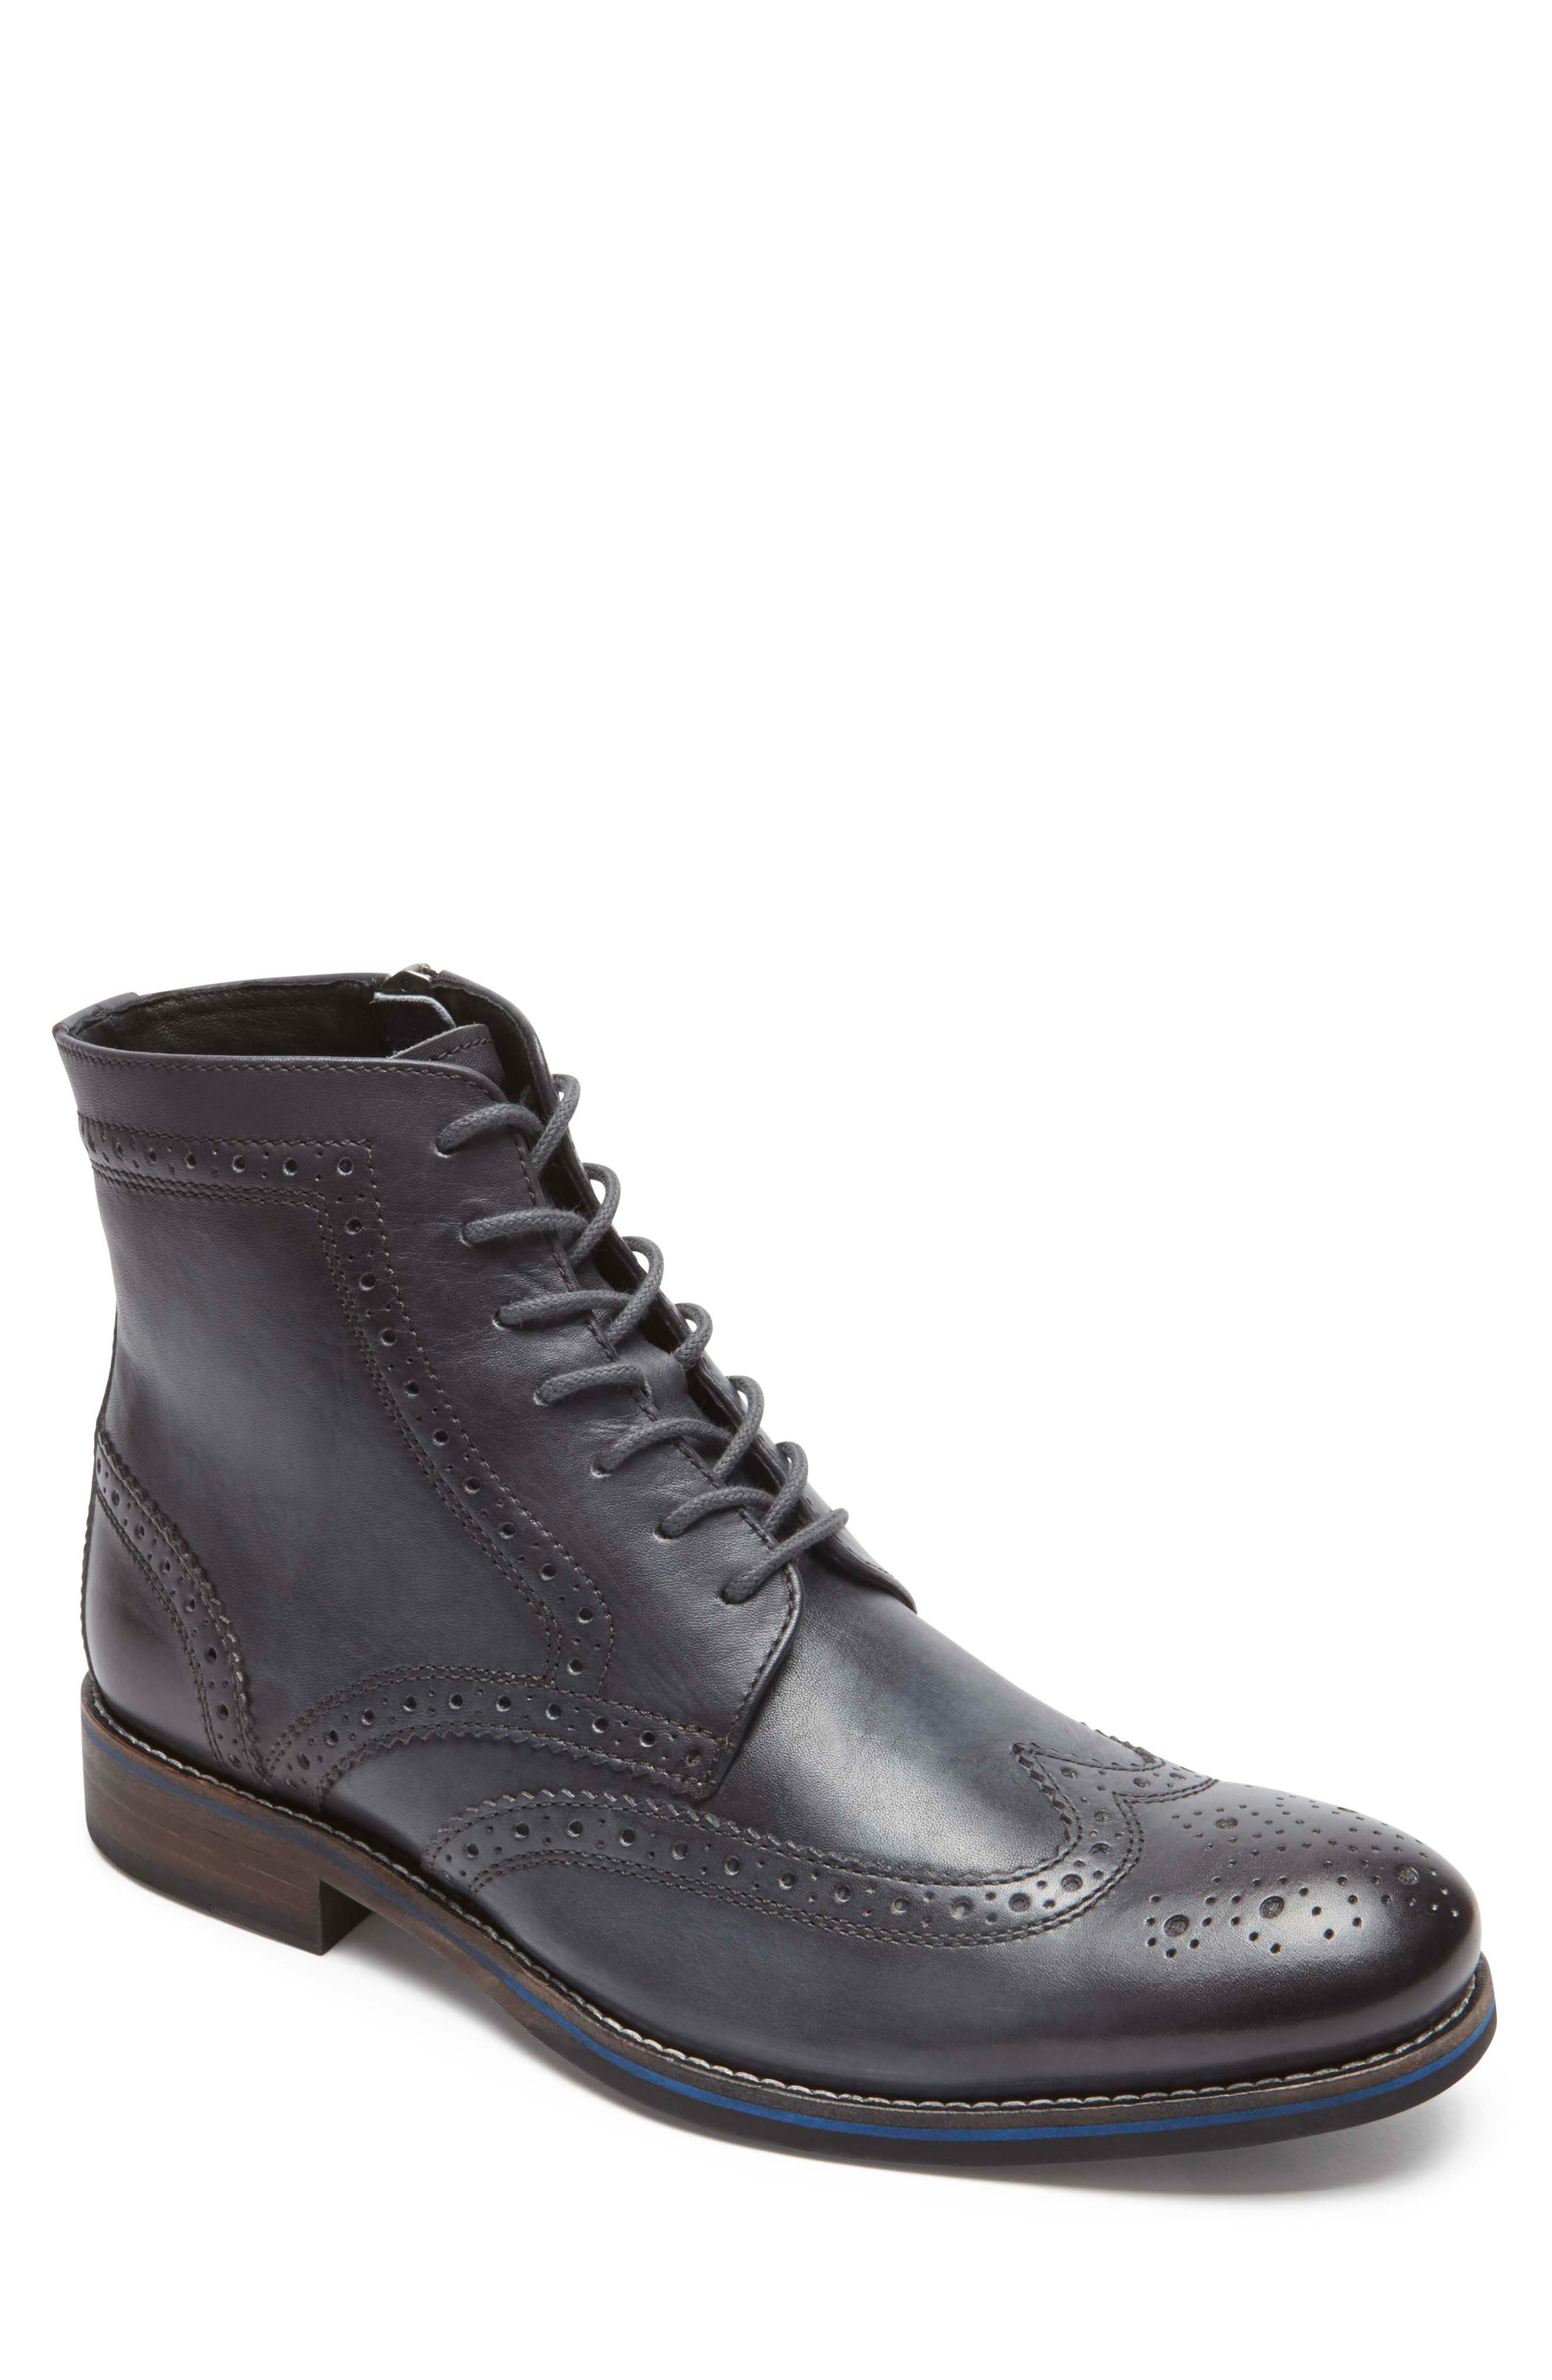 Wyat Wingtip Boot,                         Main,                         color, Dark Shadow Leather